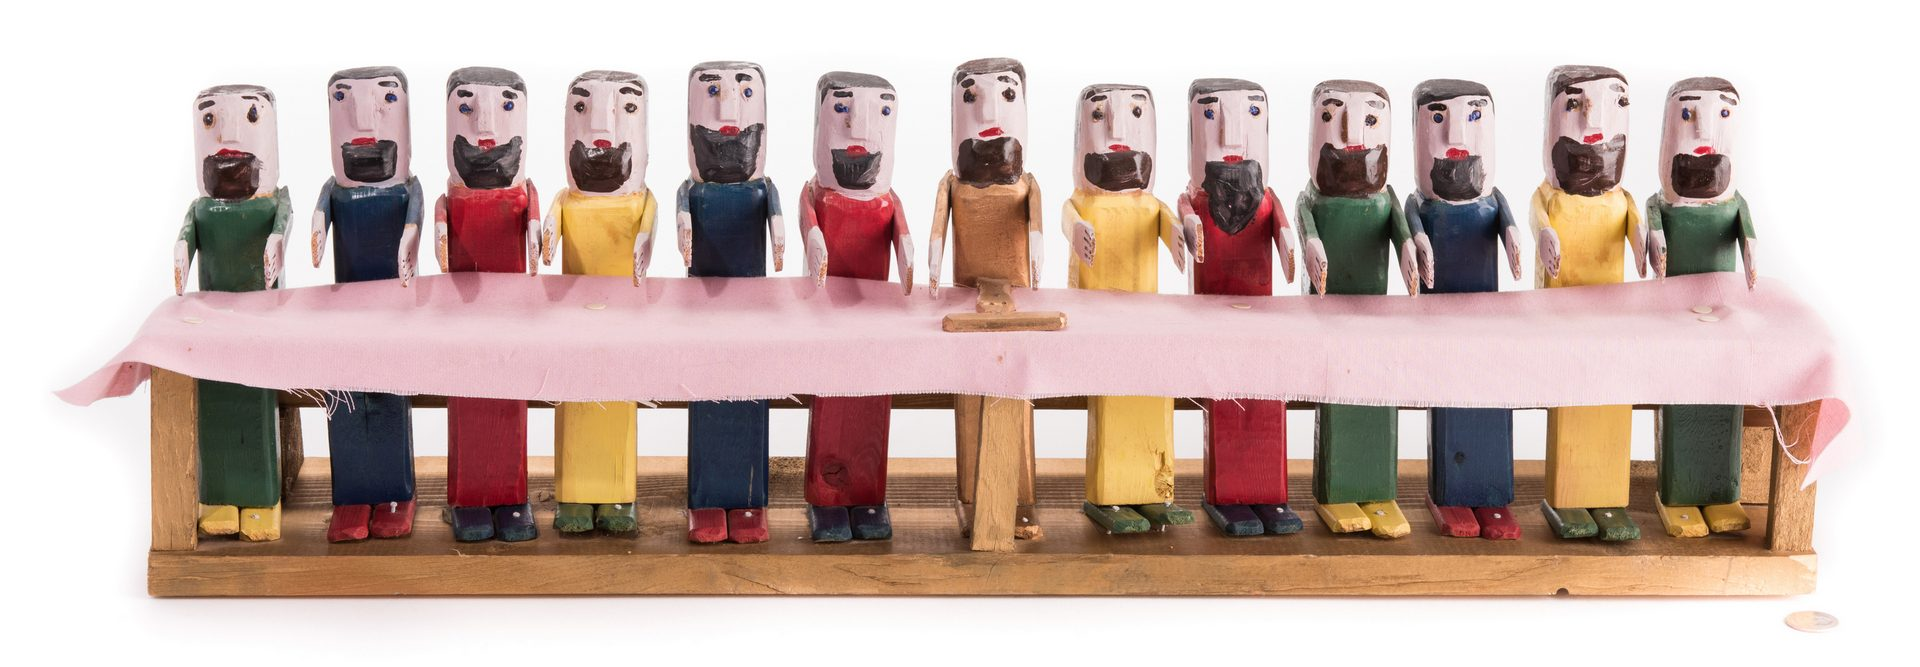 Lot 580: Braxton Ponder Carving, Last Supper